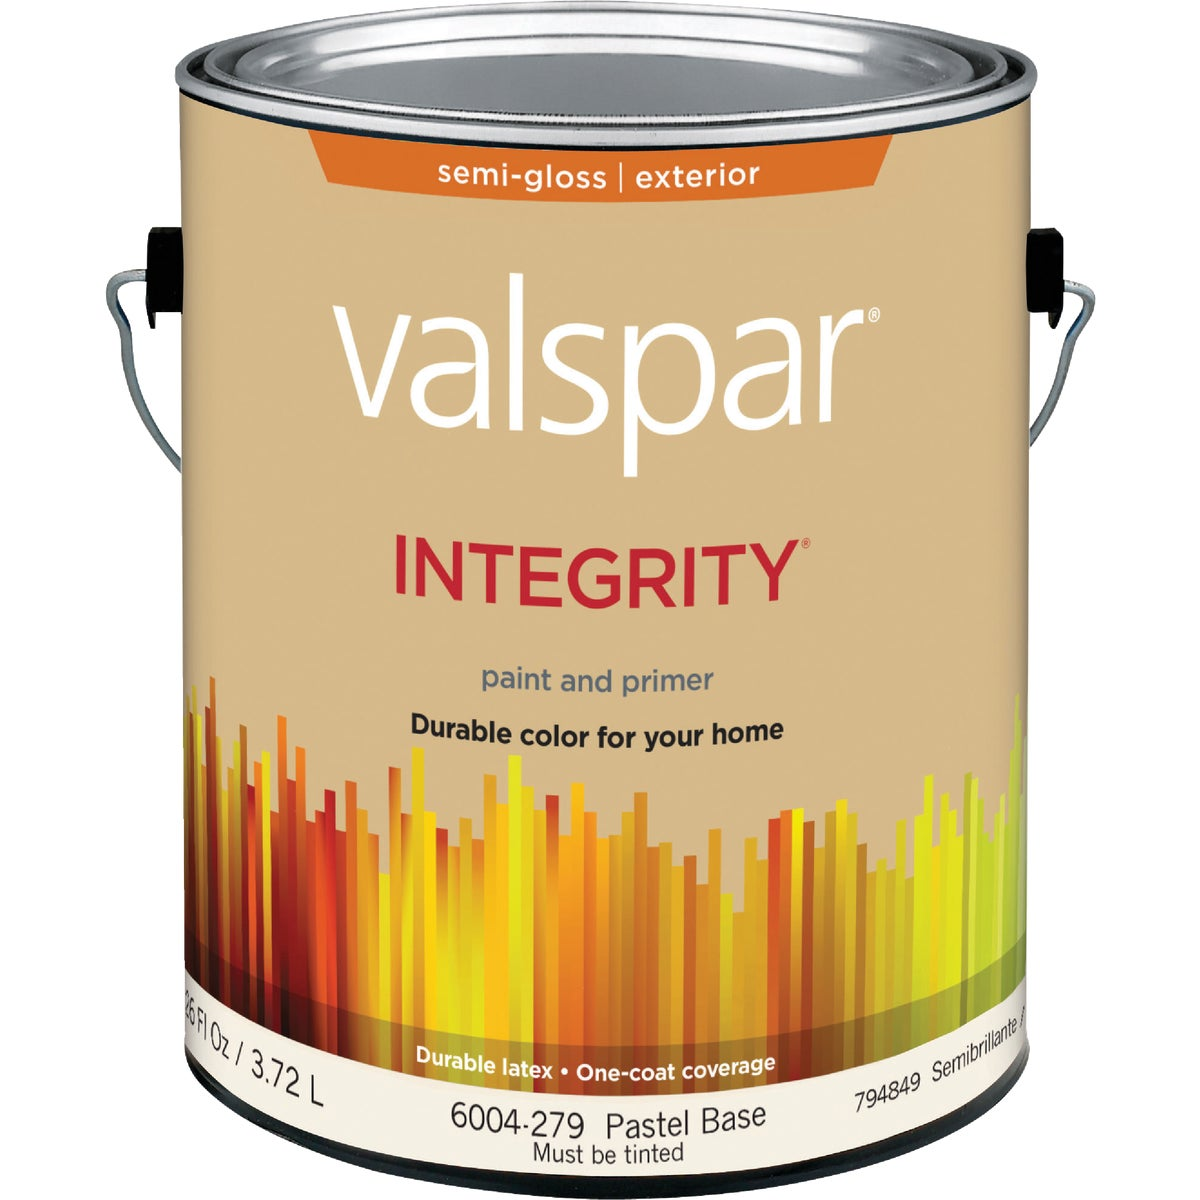 EXT S/G PASTEL BS PAINT - 004.6004279.007 by Valspar Corp